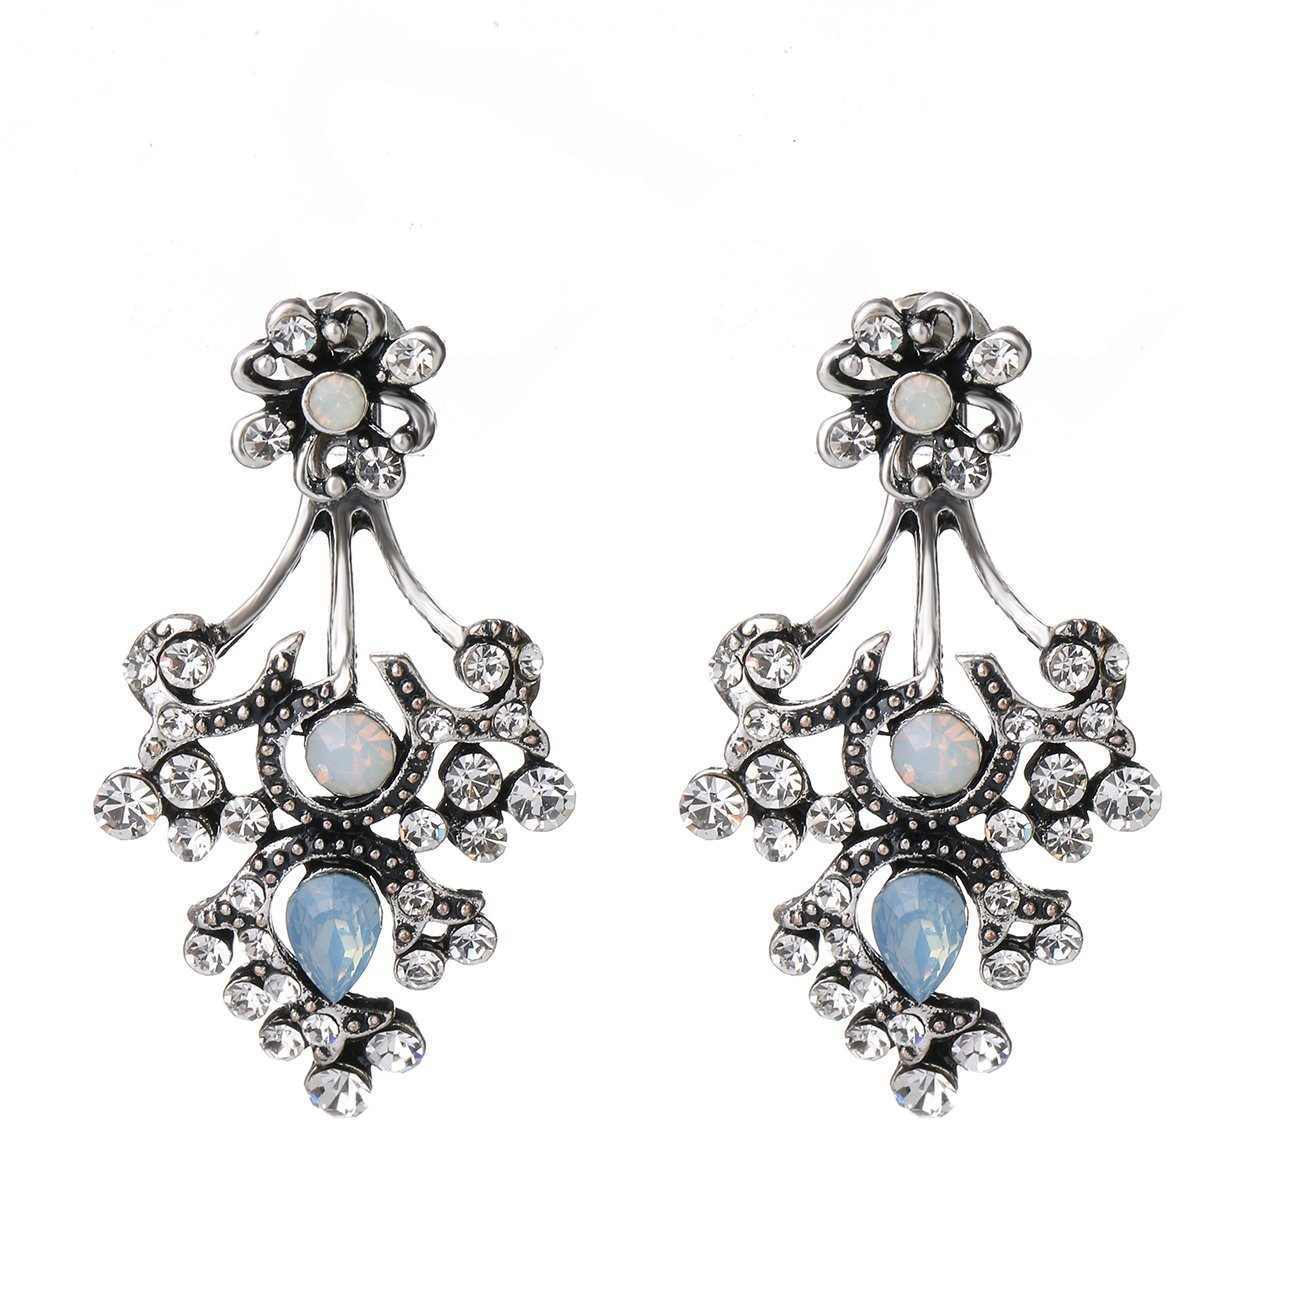 She Lian Vintage Fashion Front Back Rhinestone Stud and Ear Jacket Earrings for Women Mismatch Style (Antique Silver Tone)